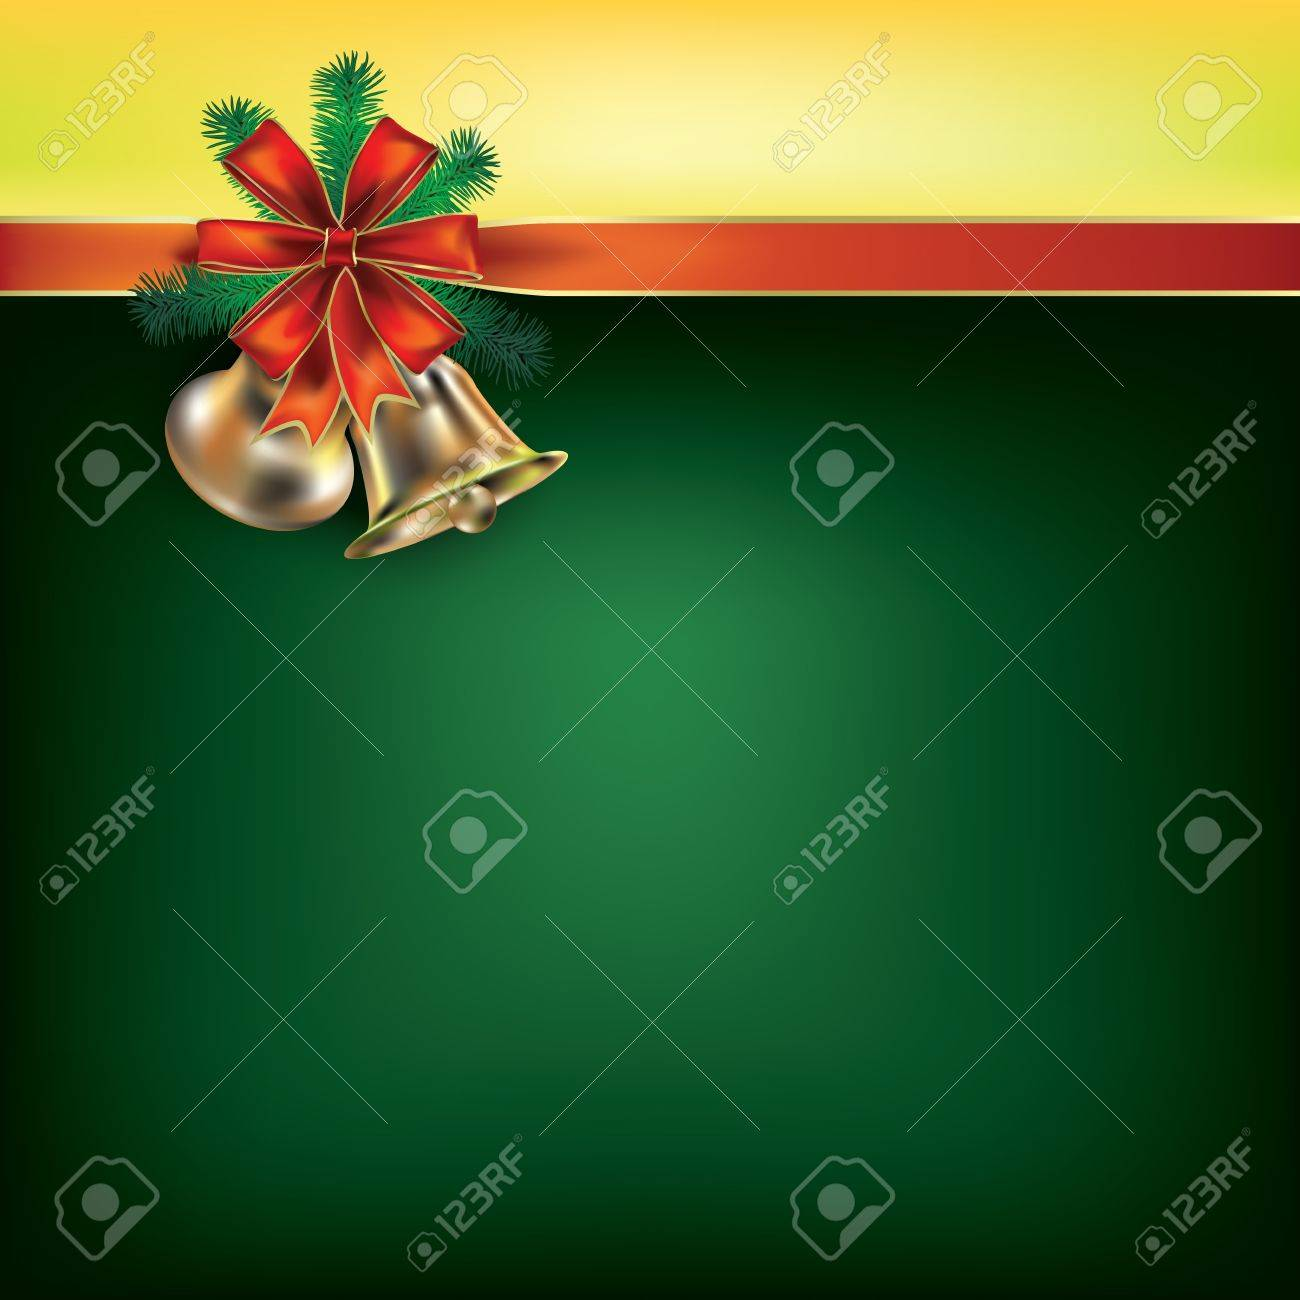 Abstract Christmas green greeting with red gift ribbons Stock Vector - 10490100